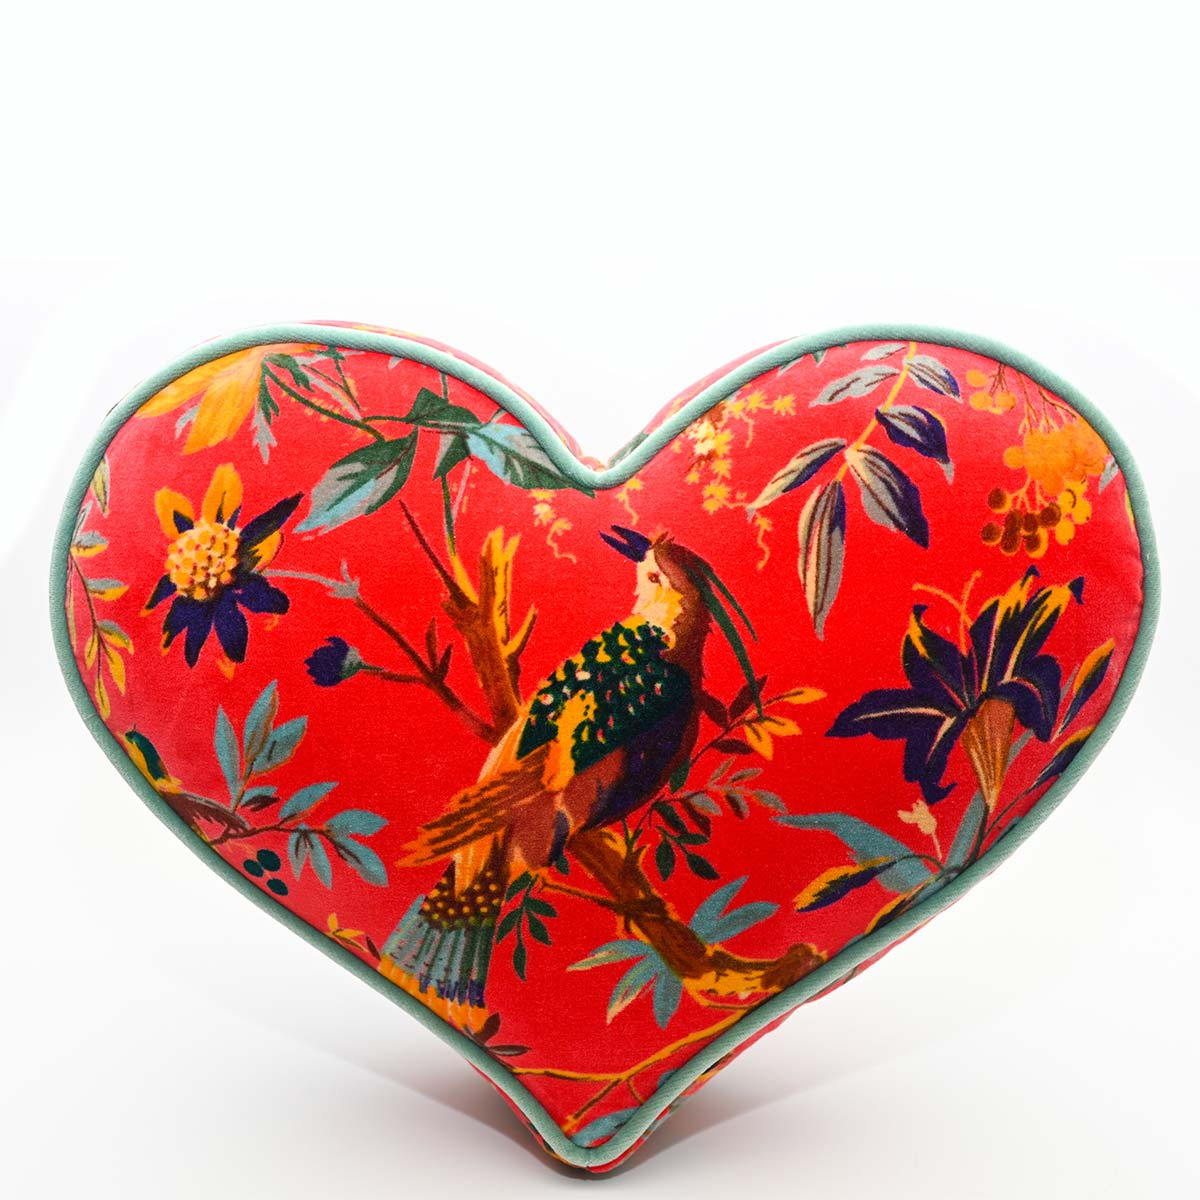 Large Heart Pillow – Bird Motif on Red